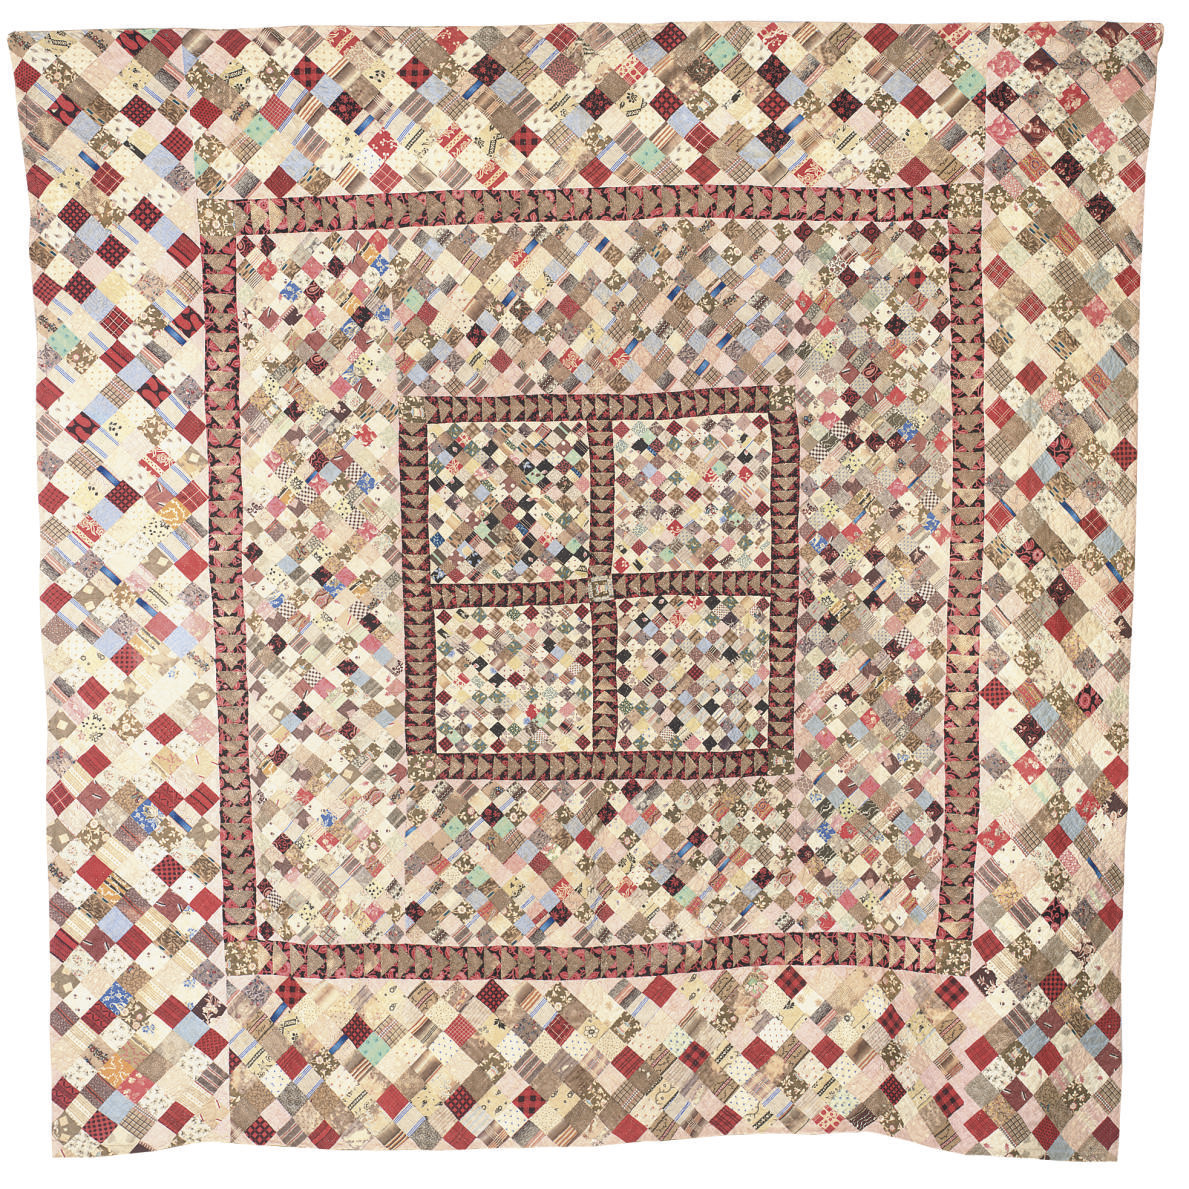 A FINE ENGLISH FRAME QUILT